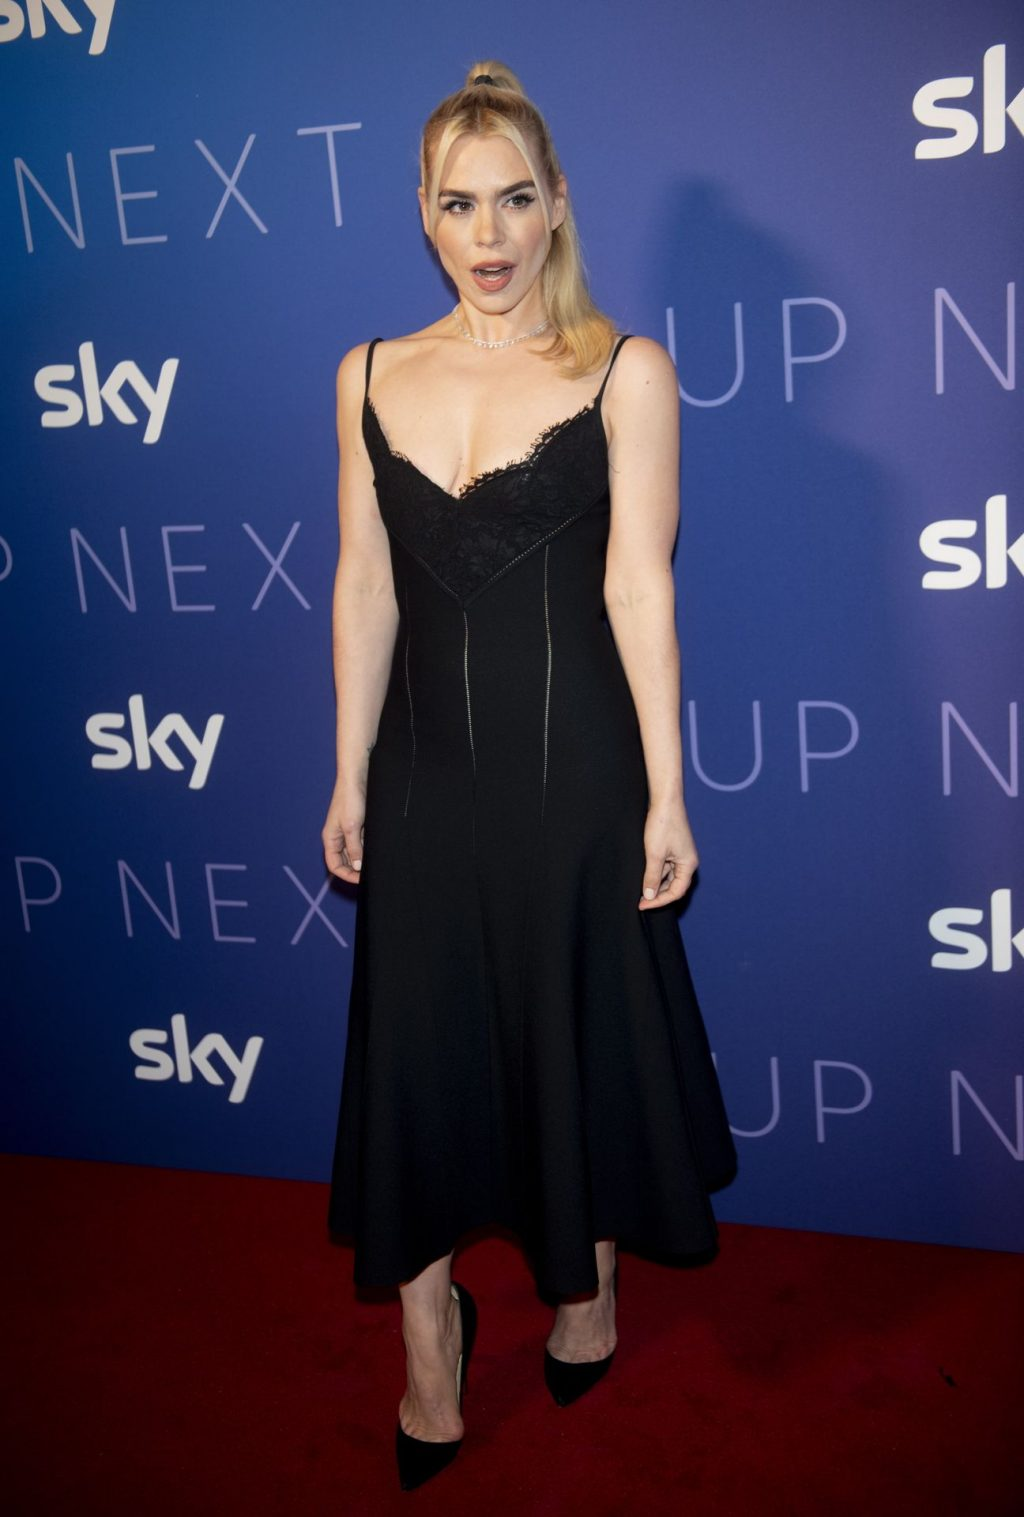 Billie Piper Smiles at the Sky Up Next Event (67 Photos)